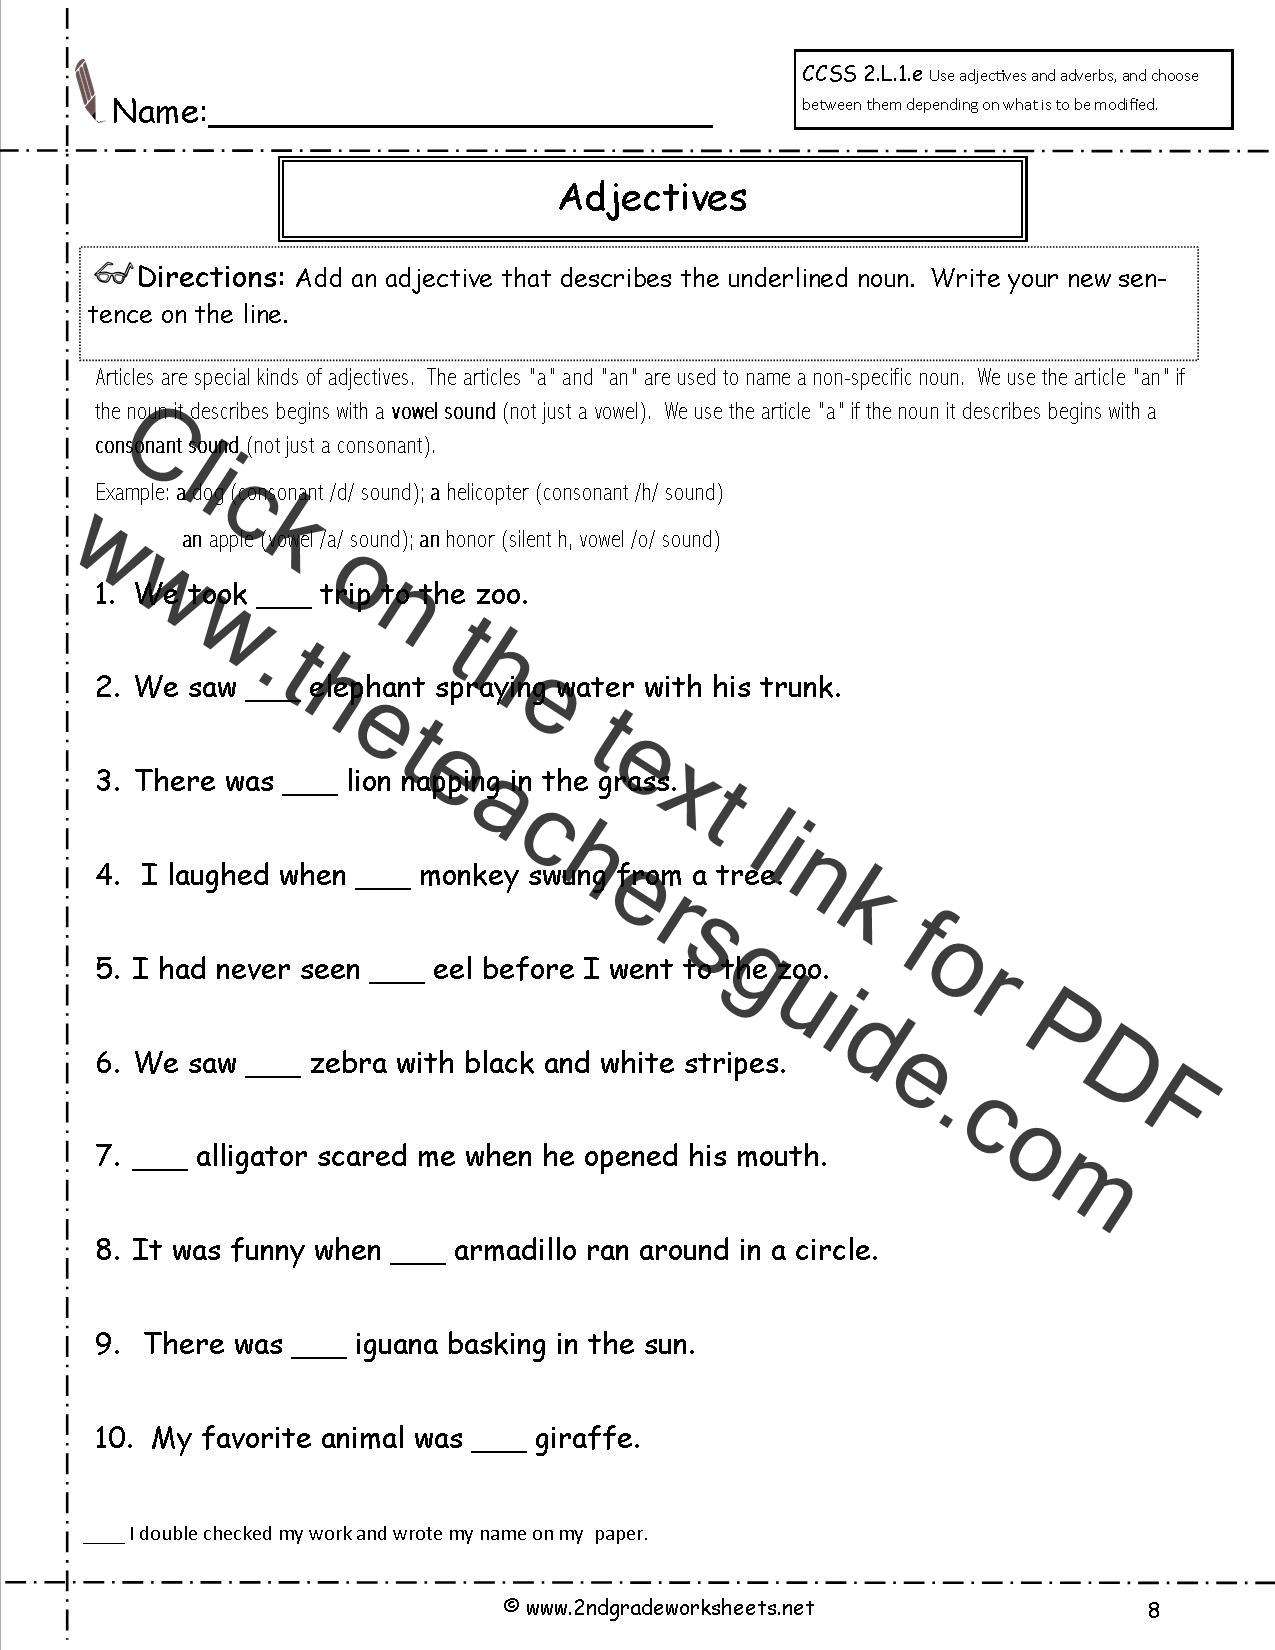 Worksheet Common Core Grammar Worksheets free languagegrammar worksheets and printouts adjectives common core